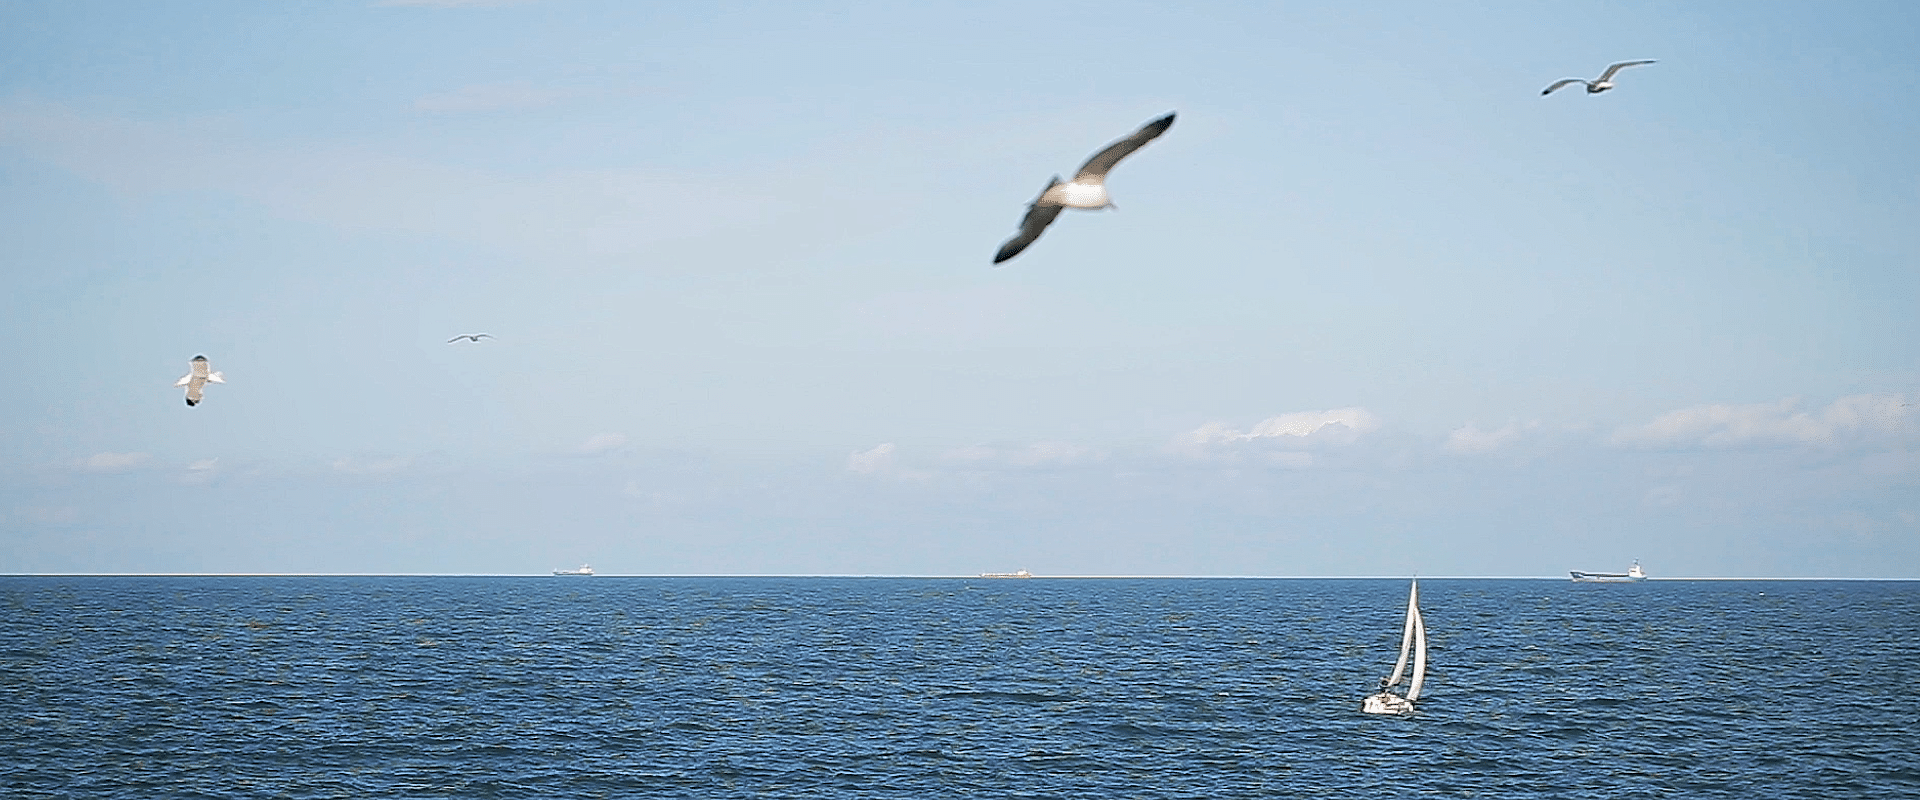 Black sea with birds and boat